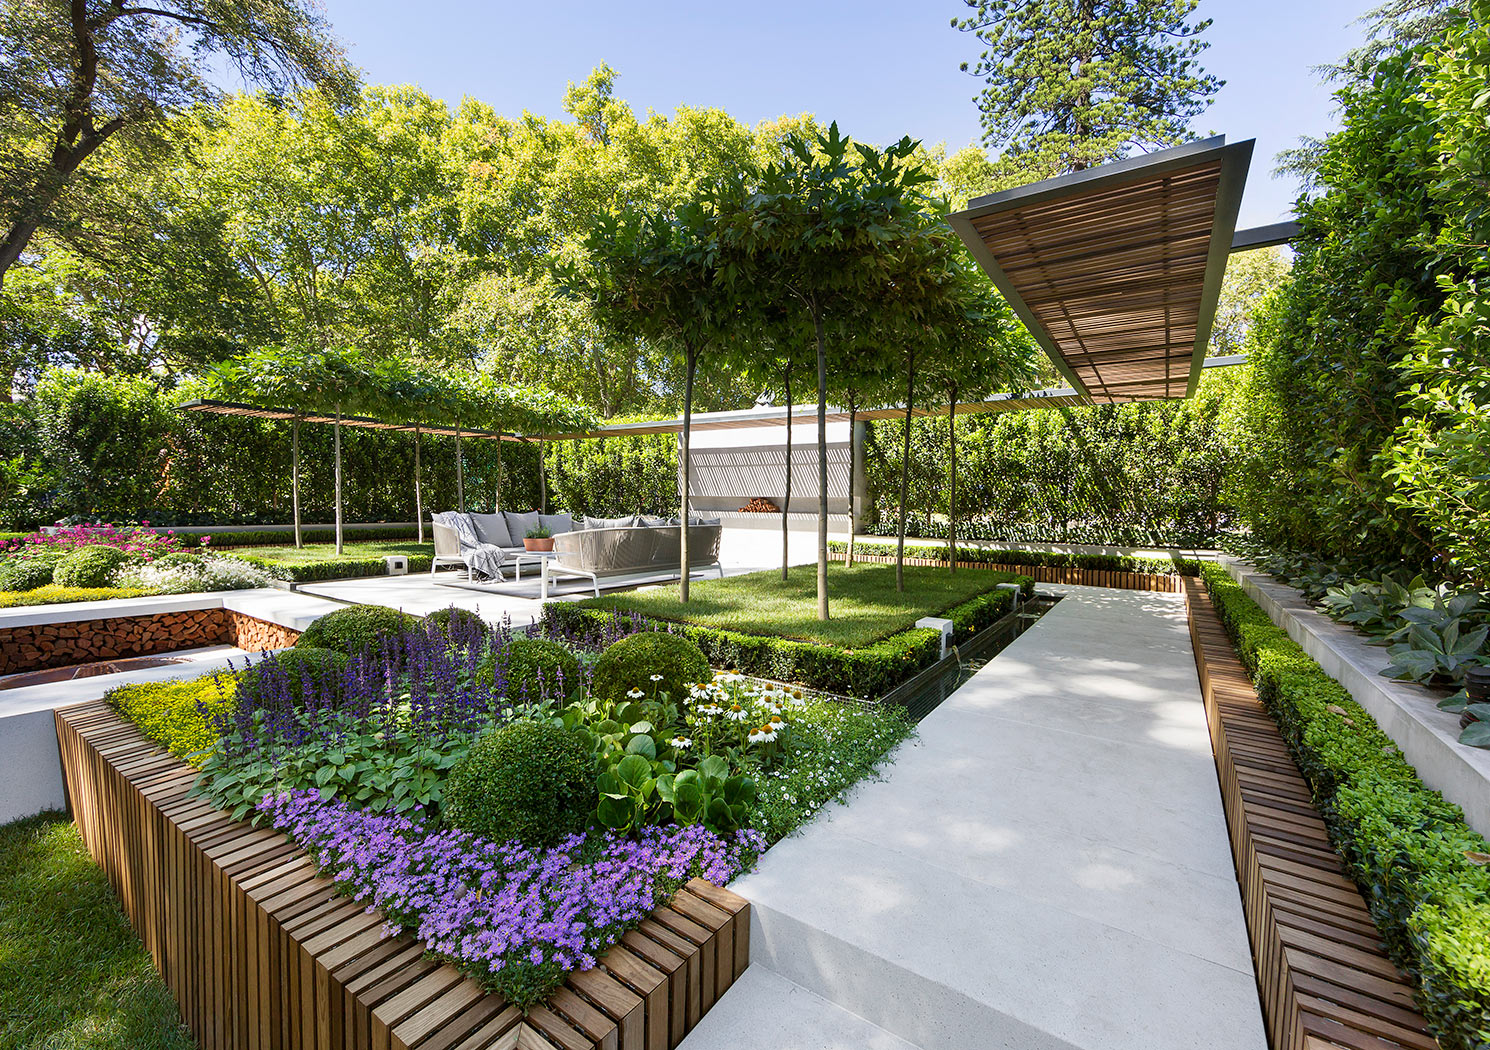 Landscape garden designer melbourne nathan burkett design for Best apps for garden and landscaping designs